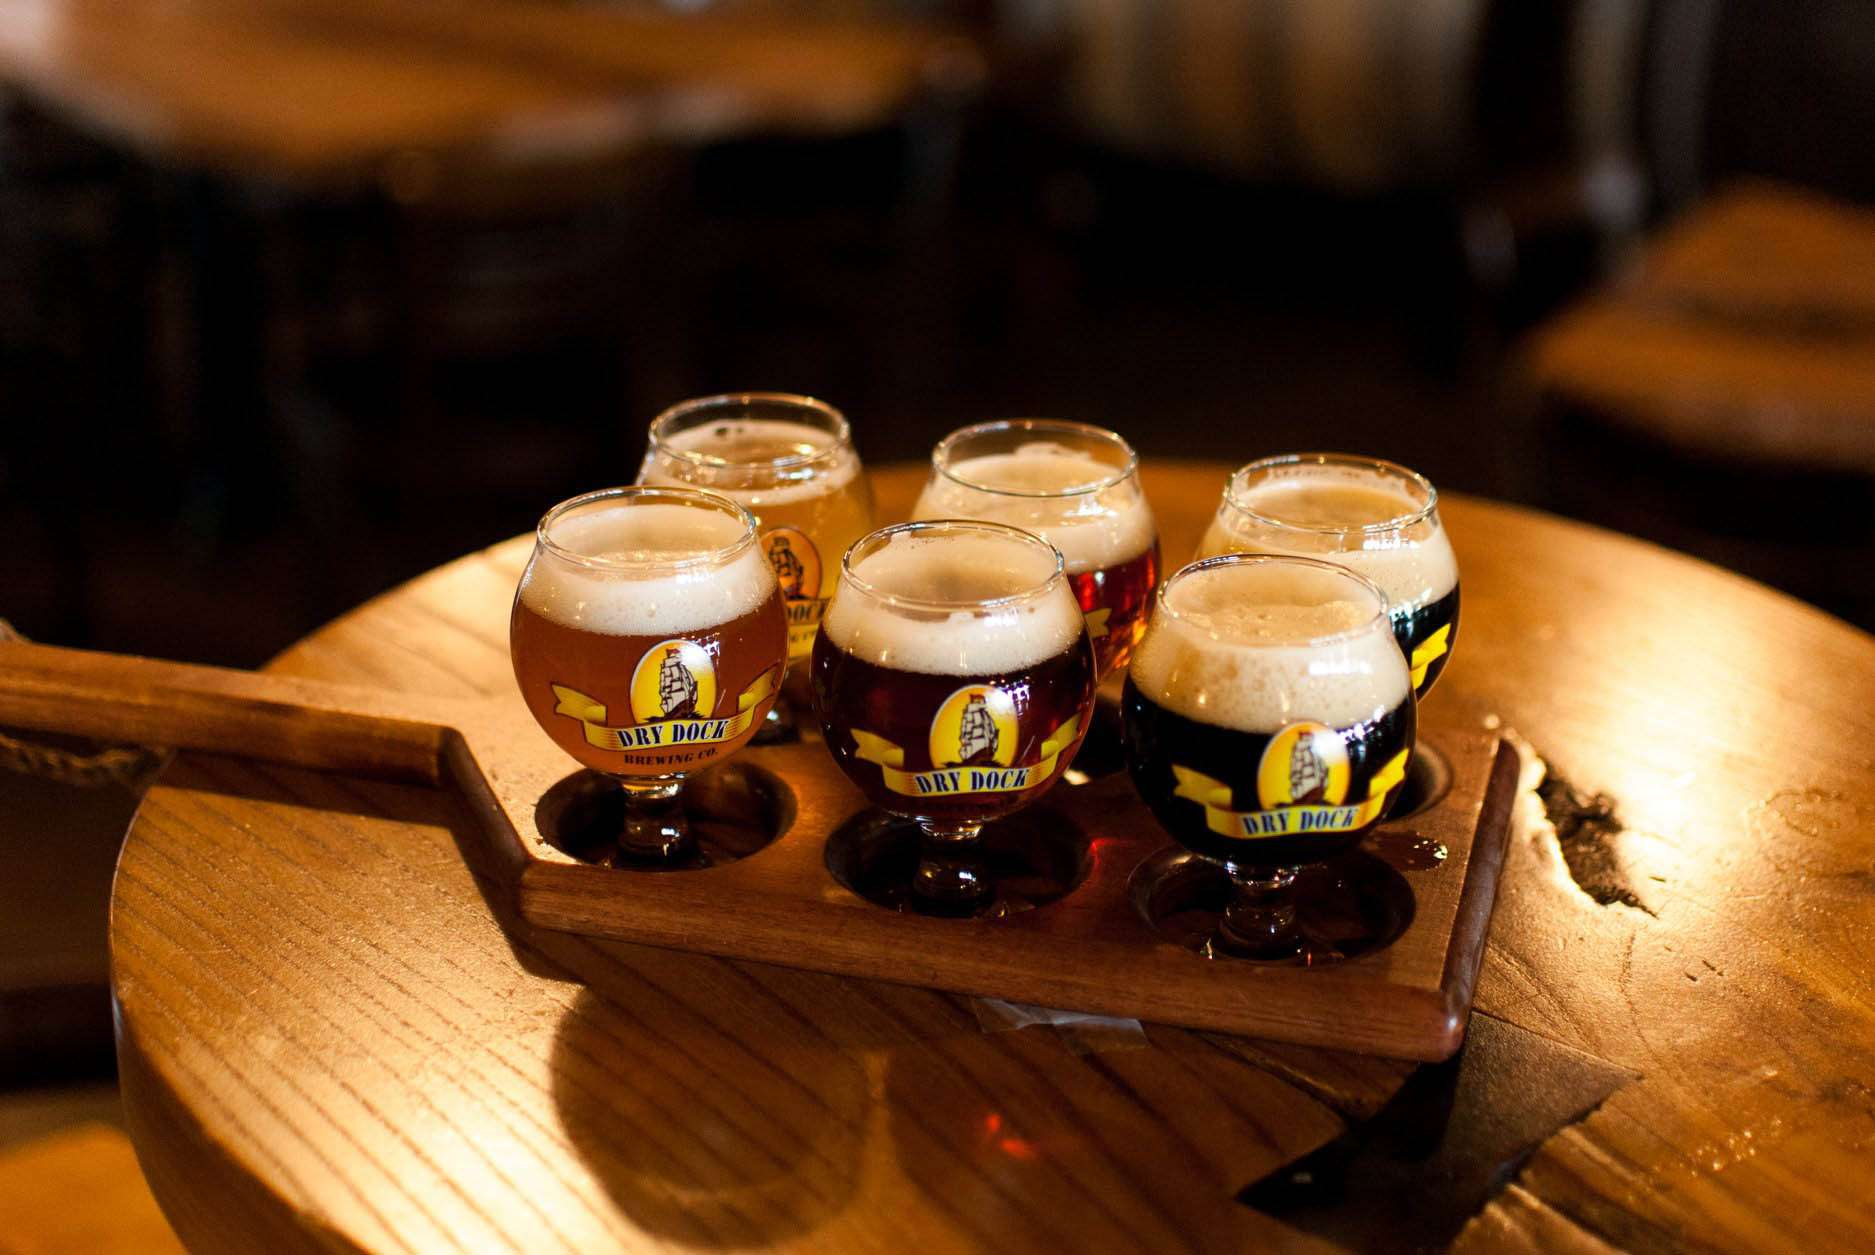 A flight of beers from Dry Dock Brewing